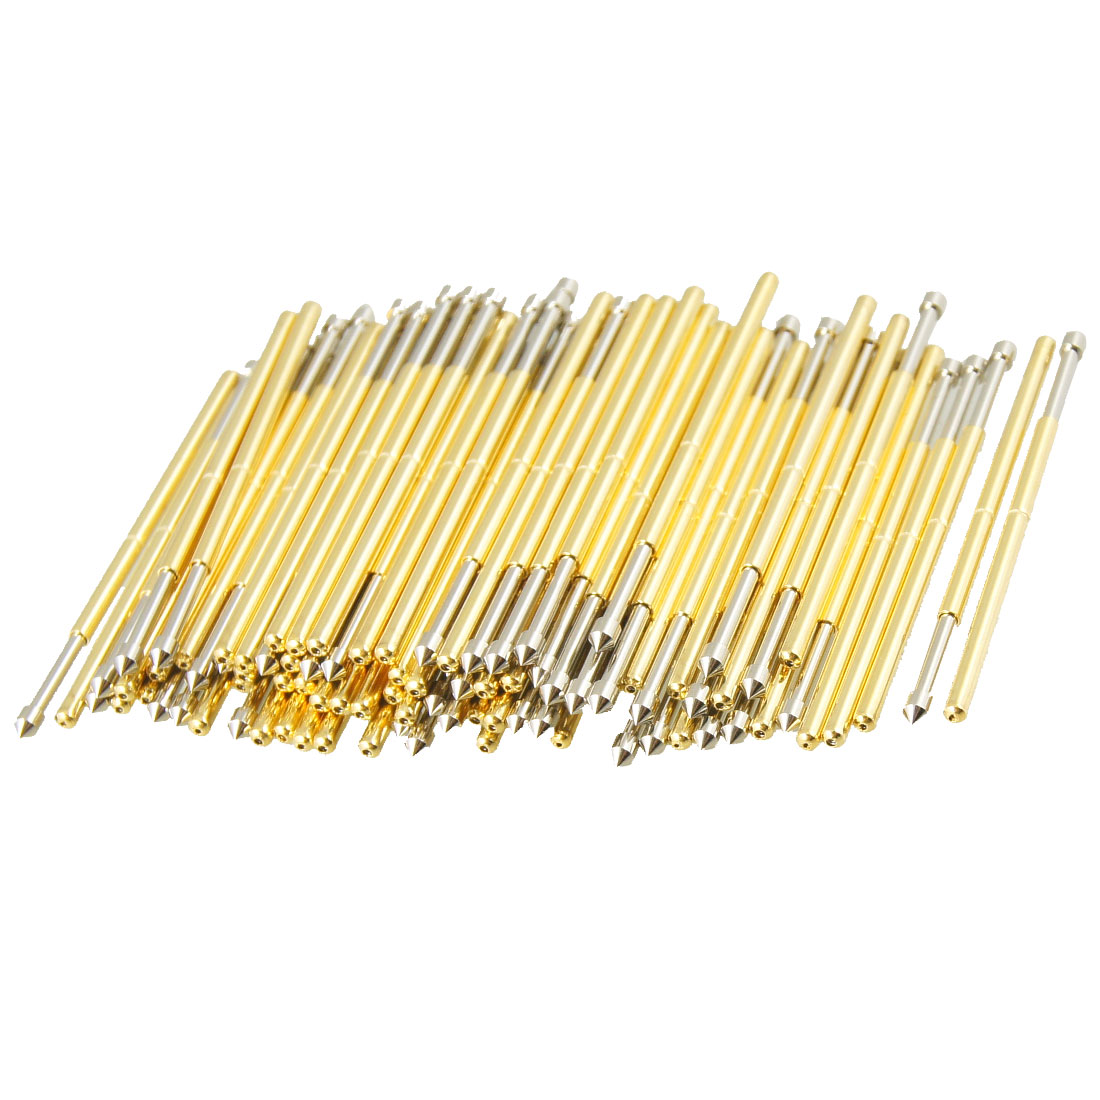 100 Pcs 9100E 1.5mm 90 Degree Convex Tip Dia Spring Test Probes Pins